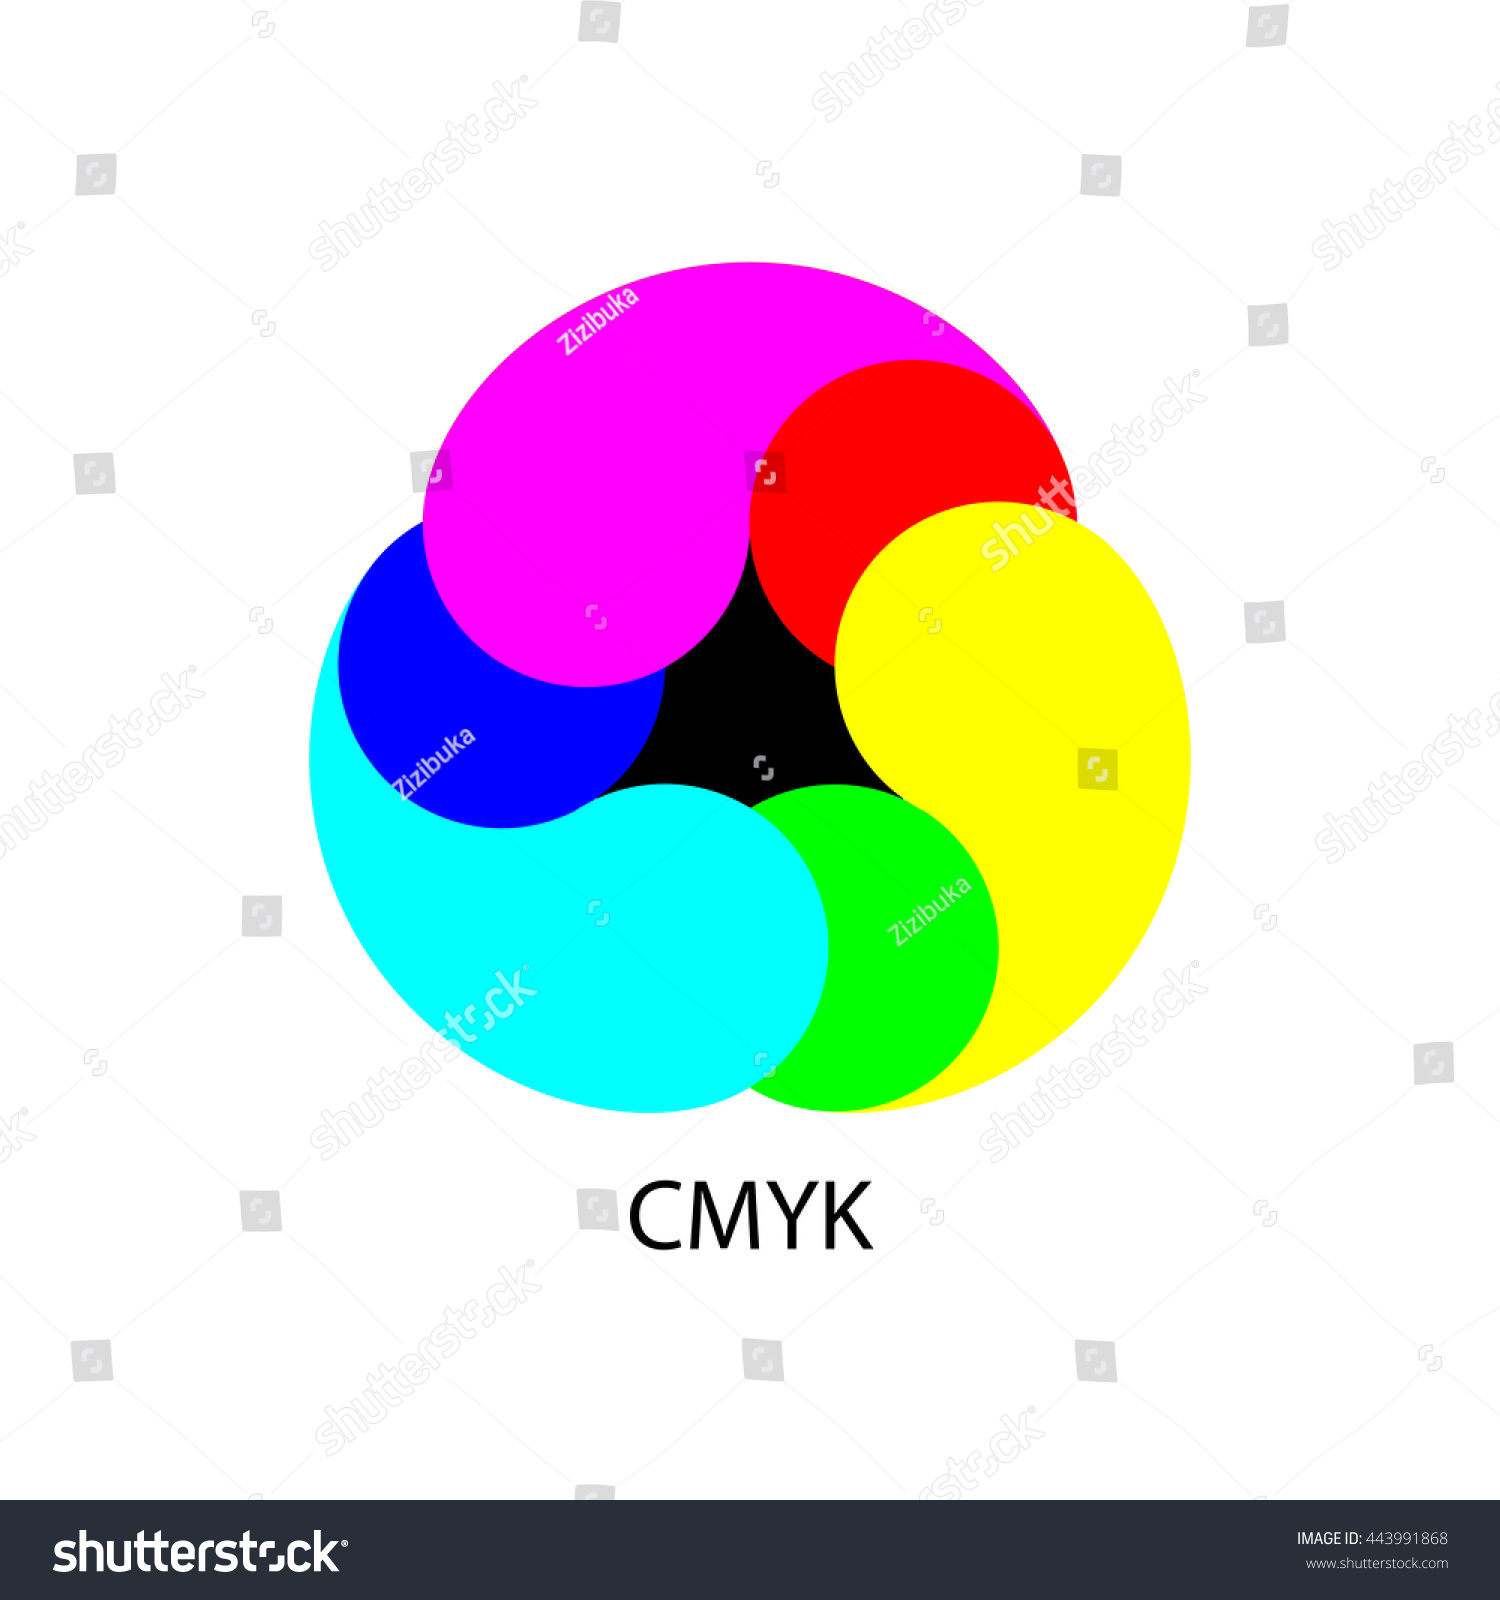 Vector Chart Explaining CMYK Color Modes Cyan Yellow Magenta And Black With